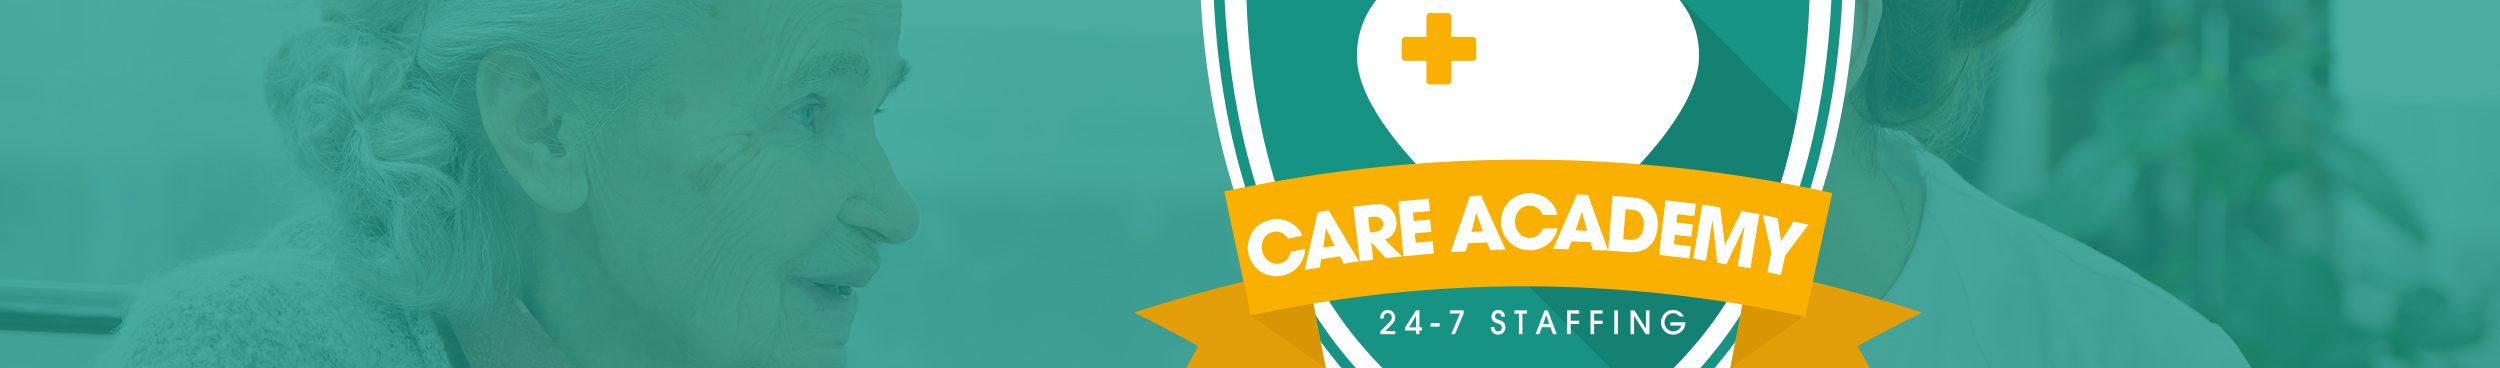 24-7 staffing care academy